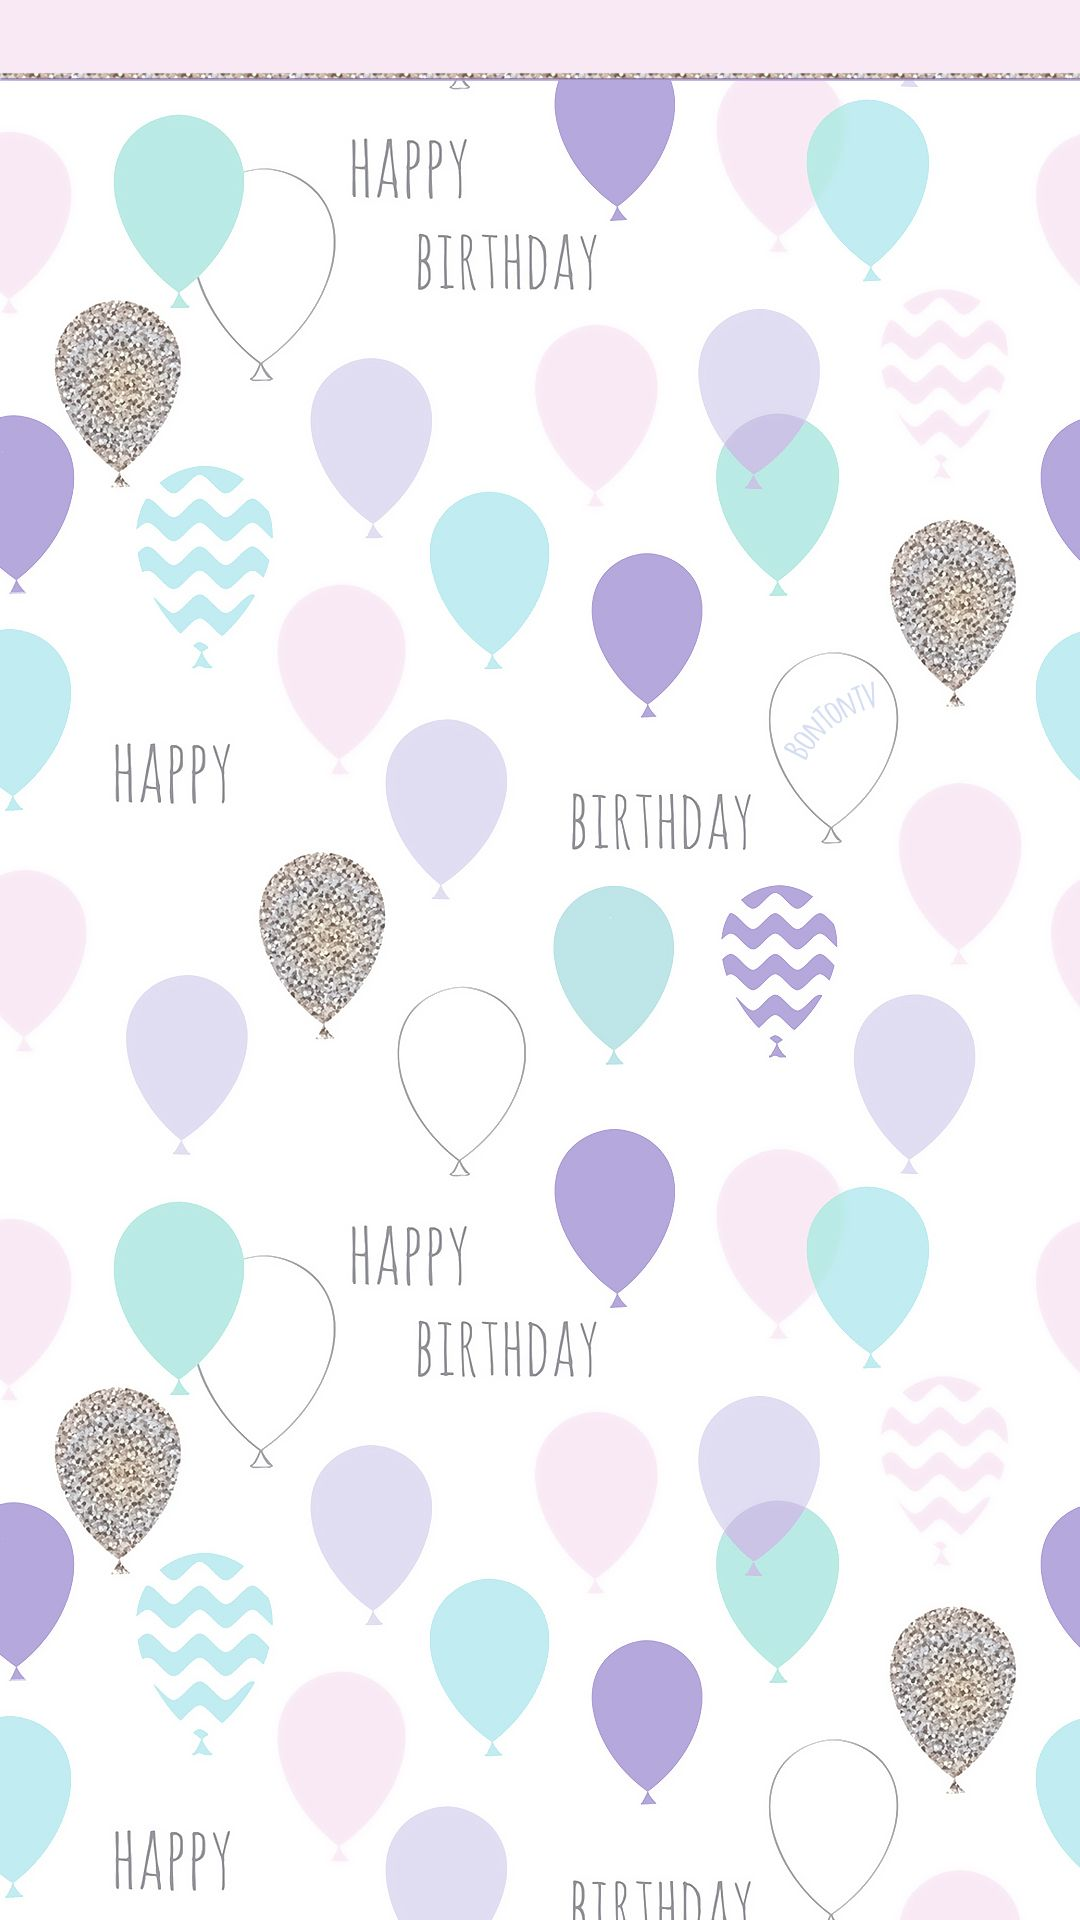 Phone Wallpapers Hd Free Wallpapers By Bonton Tv Cute And Elegant Wallpapers Fo Birthday Wallpaper Happy Birthday Wallpaper Birthday Background Wallpaper